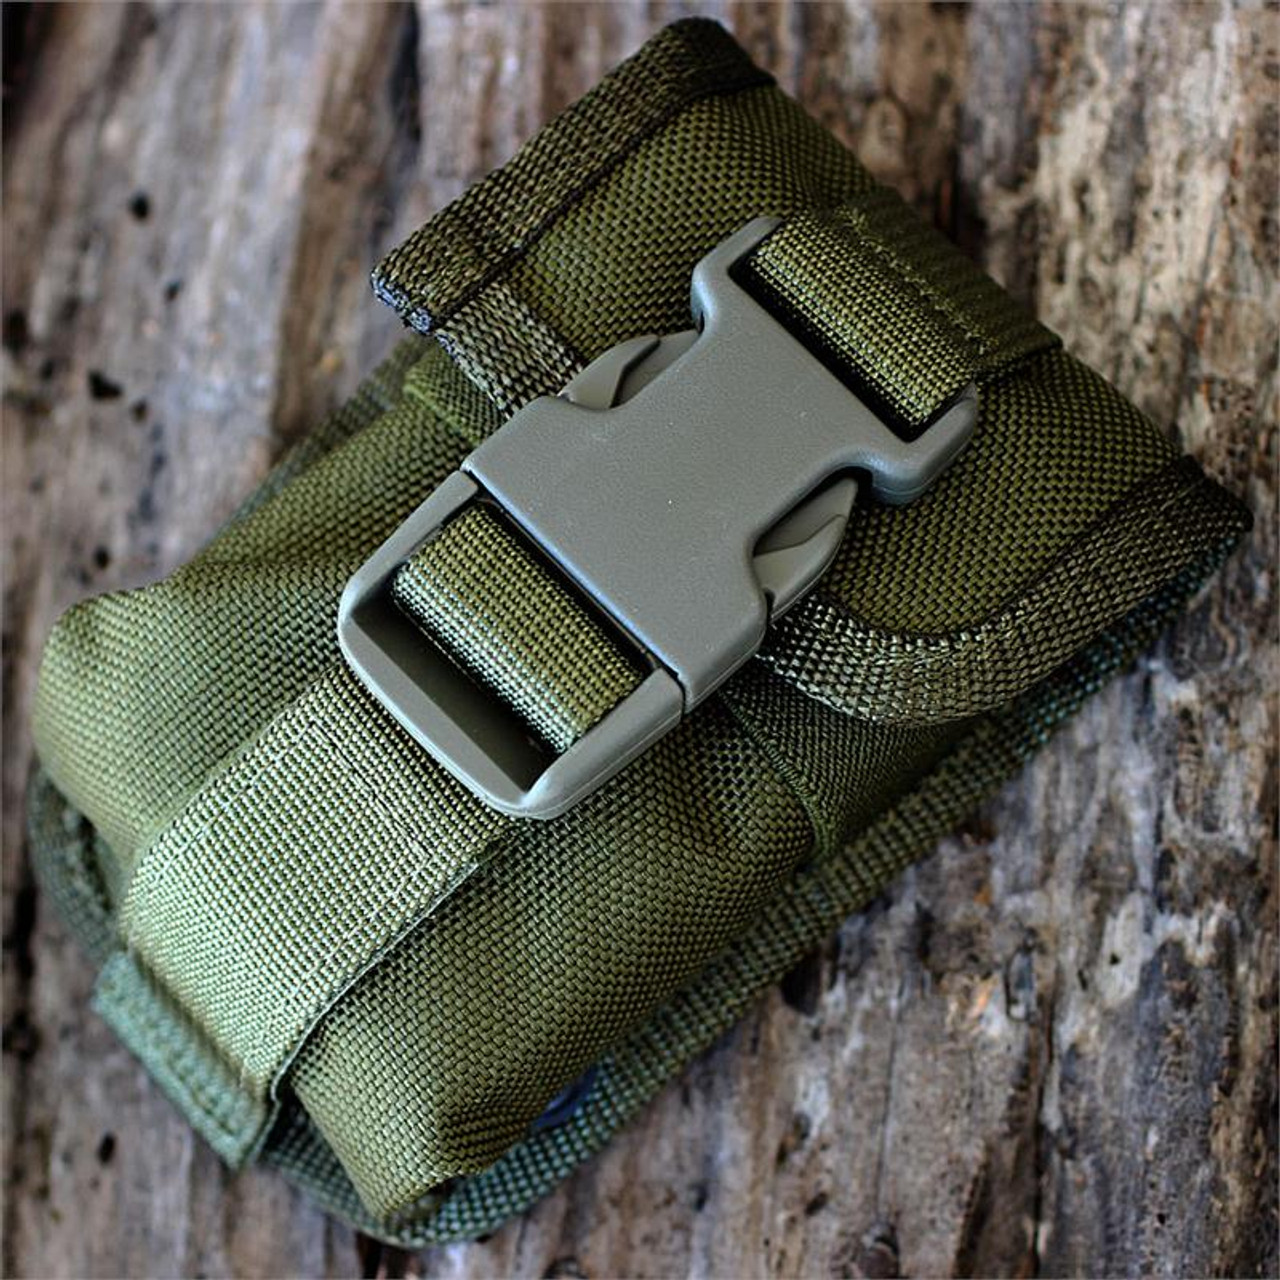 ESEE Knives ESEE-5 and ESEE-6 OD Green Accessory Pouch w/ Black Tin